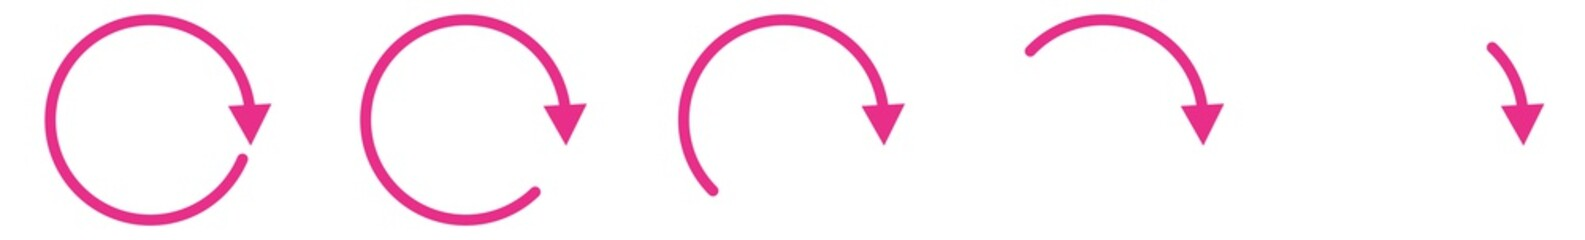 Arrow Icon Pink | Circle Arrows | Infographic Illustration | Direction Symbol | Curved Loading Logo | Up Sign | Isolated | Variations